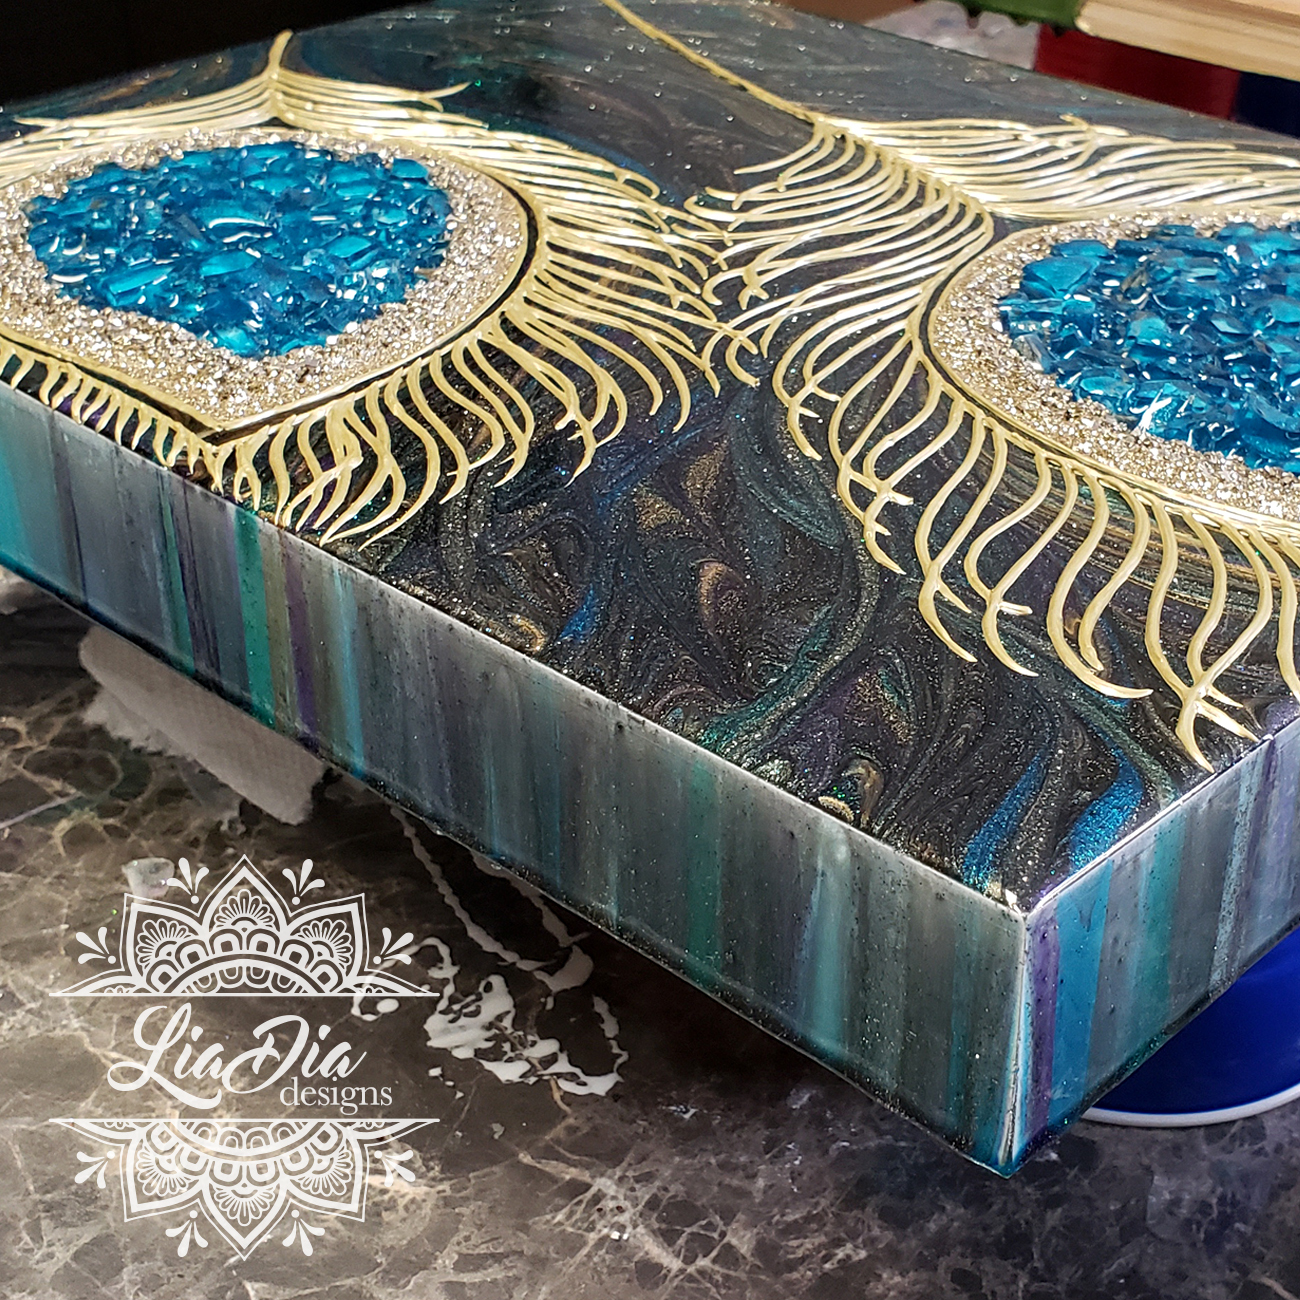 Peacock Feathers Resin Geode Style Wood Canvas Wall Art